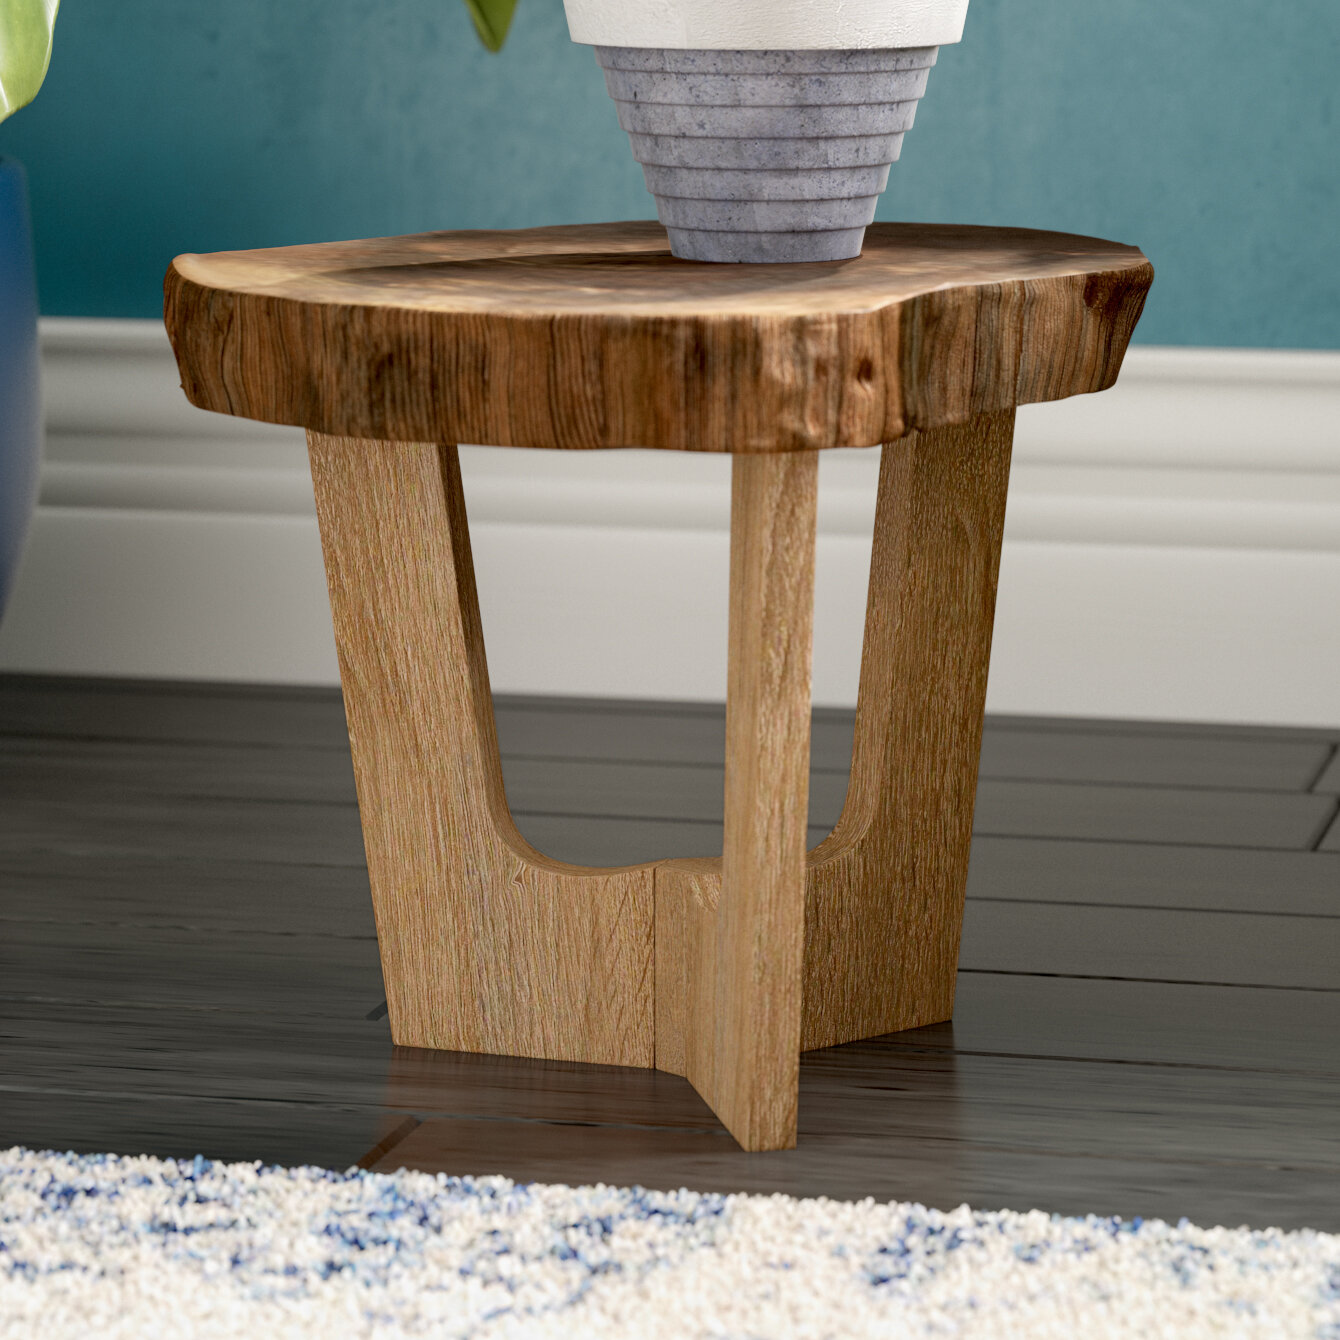 Mistana Hatfield Pedestal Plant Stand U0026 Reviews | Wayfair